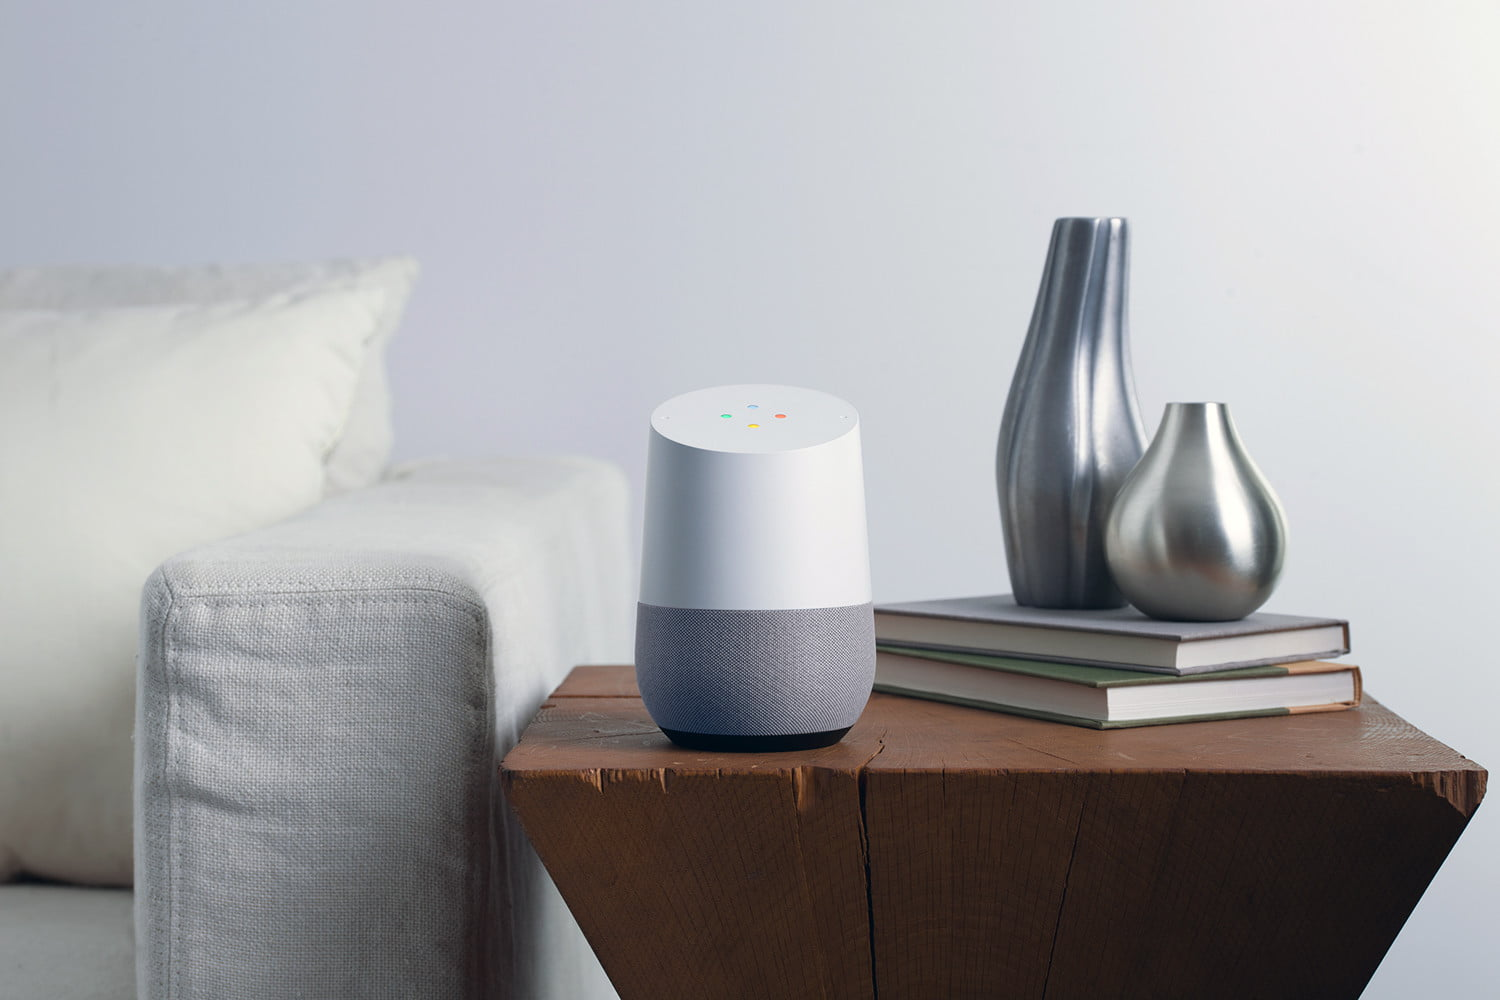 How To Set Up Hands Free Calling On The Google Home